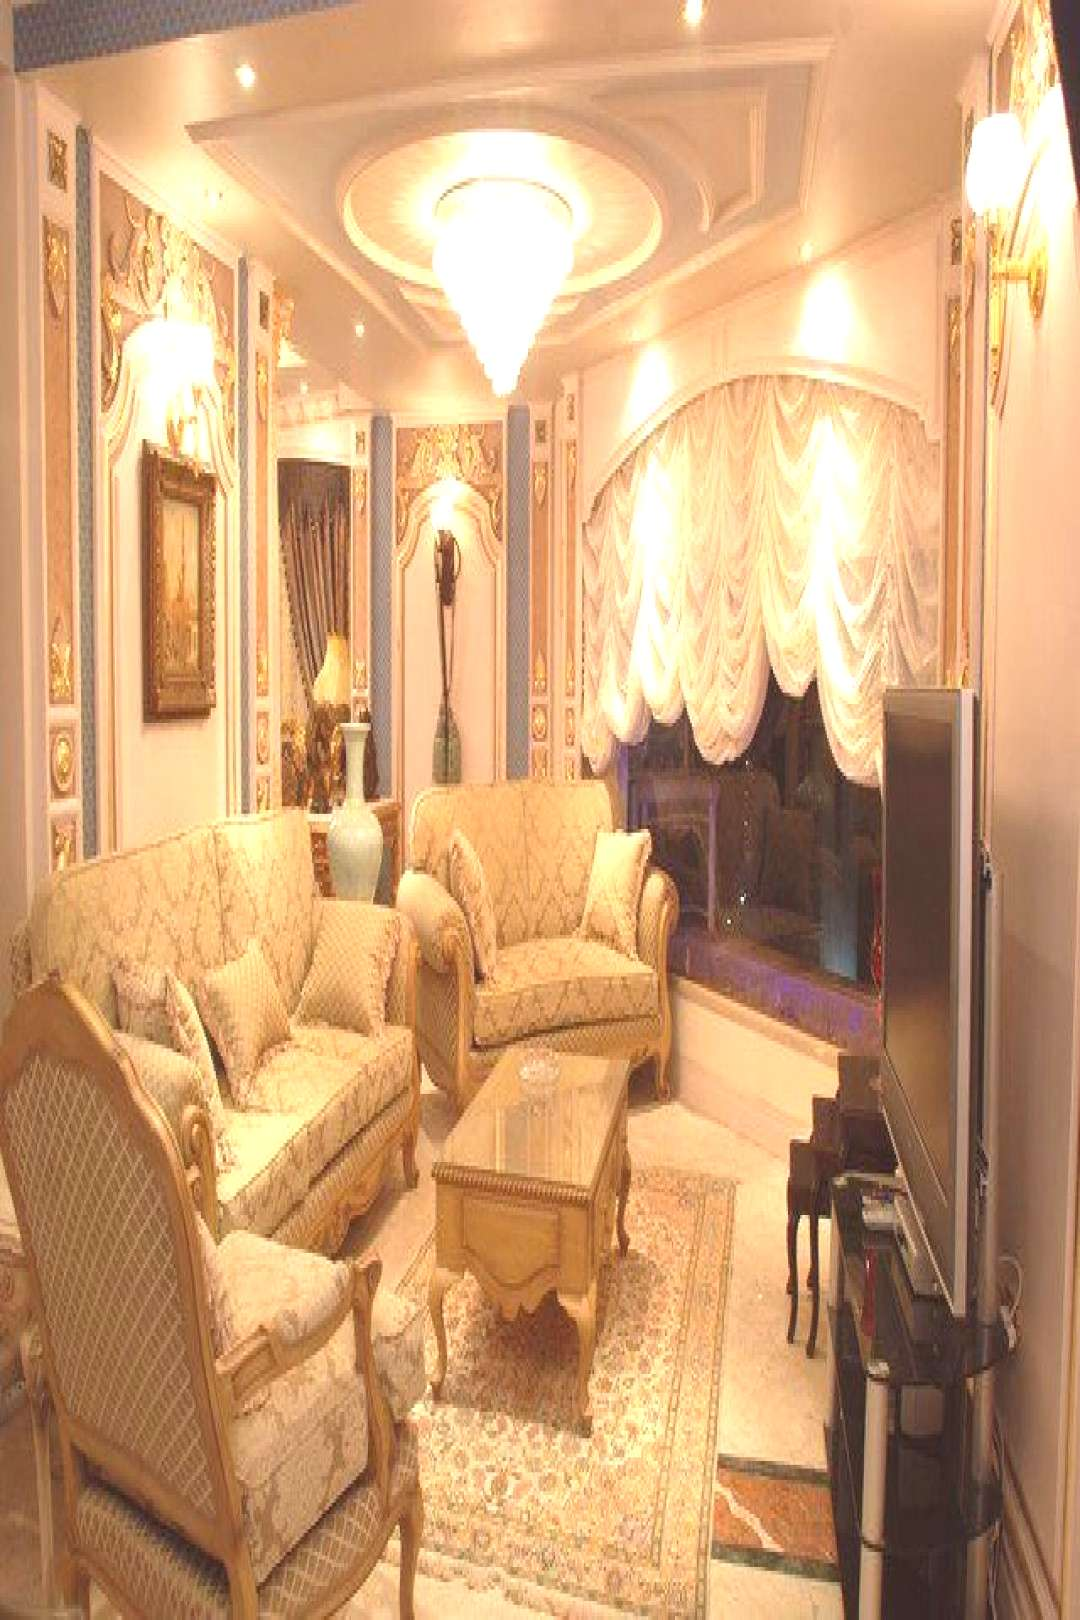 Egyptian Bedroom Decor Elegant the Cost Of Getting Married In Egypt#bedroom